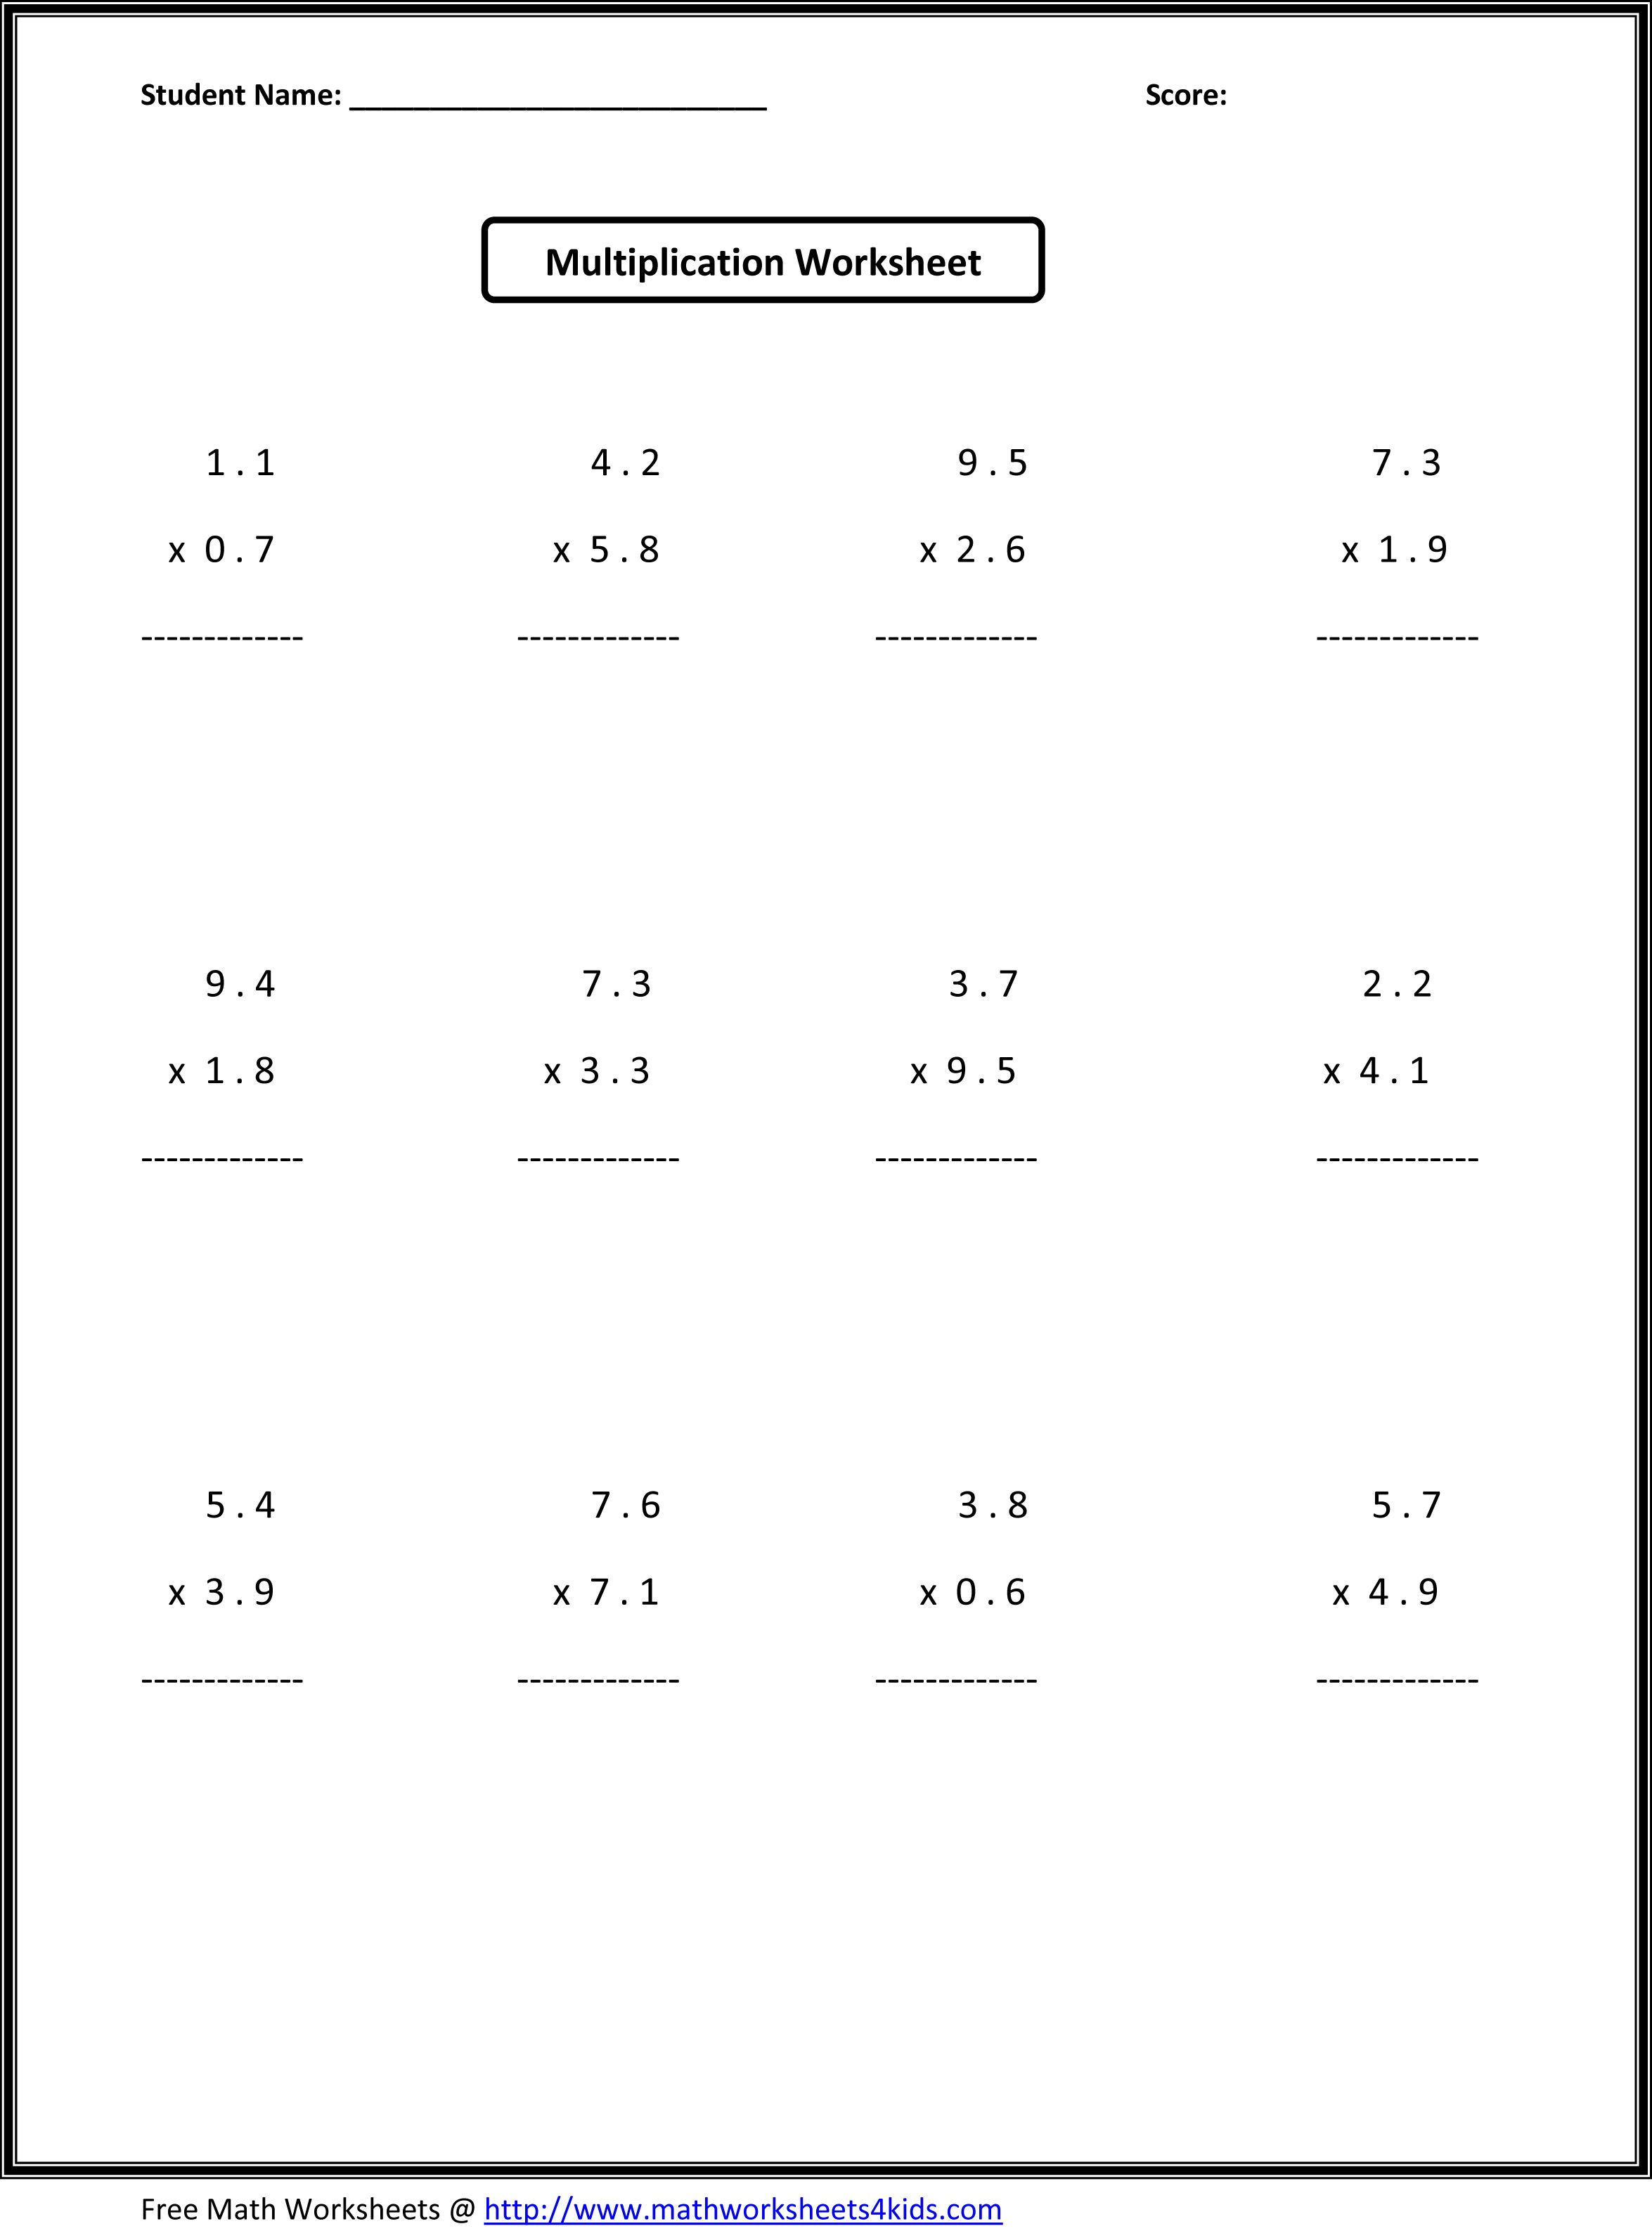 Printables Math Expressions Grade 4 Worksheets math kind of and worksheets on pinterest sixth grade have ratio multiplying dividing fractions algebraic expressions equations inequalities geometry probability more